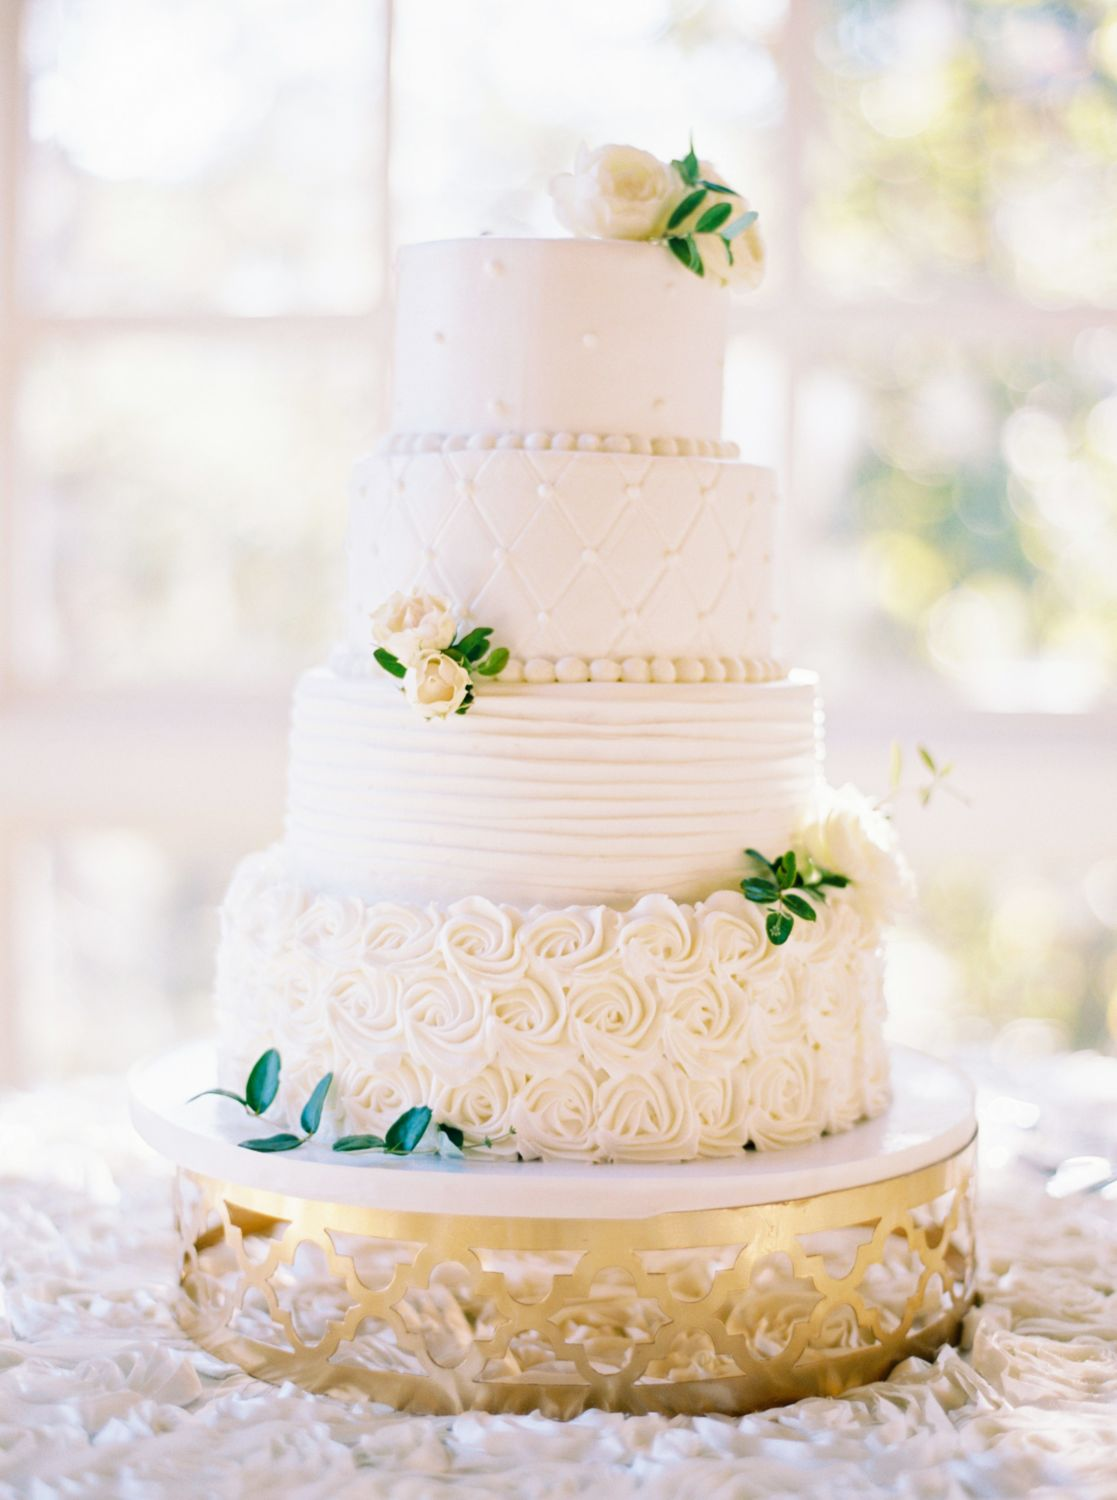 13 Perfectly Sweet Heart Shaped Wedding Cakes